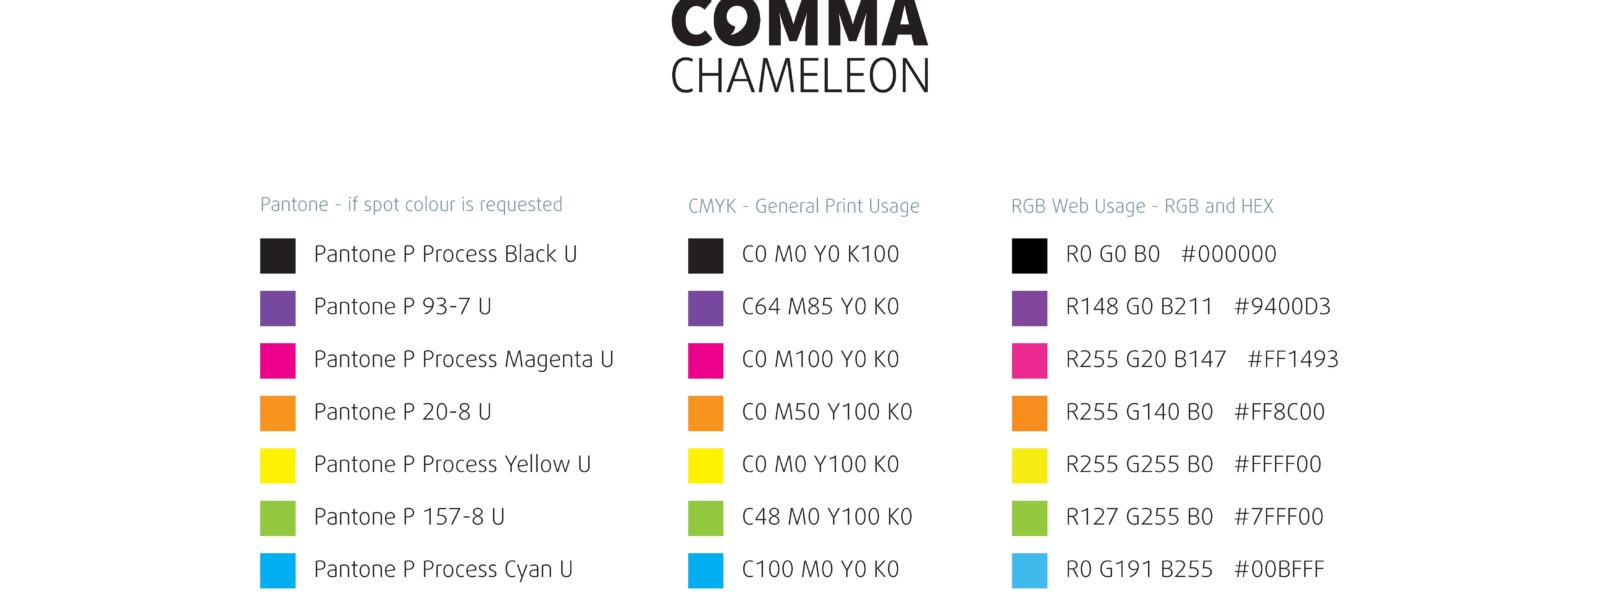 The Comma Chameleon brand style guide includes colour swatches.